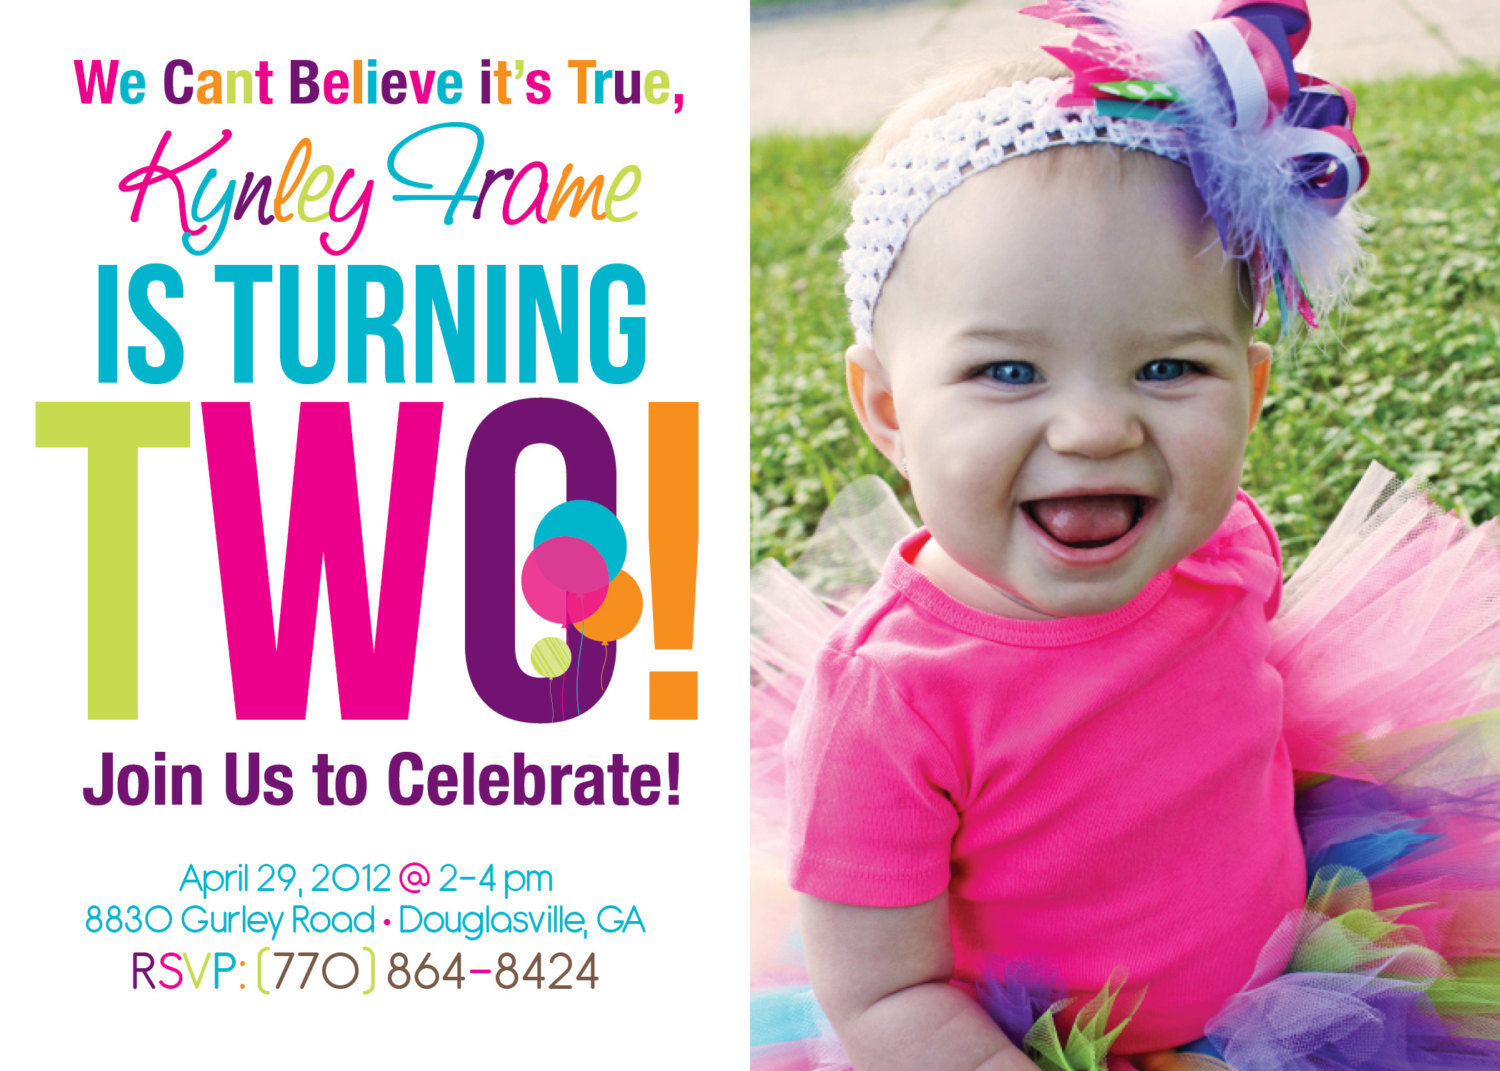 2nd birthday party invitation wording samples ; 2nd_birthday_invitations_wording_samples_2